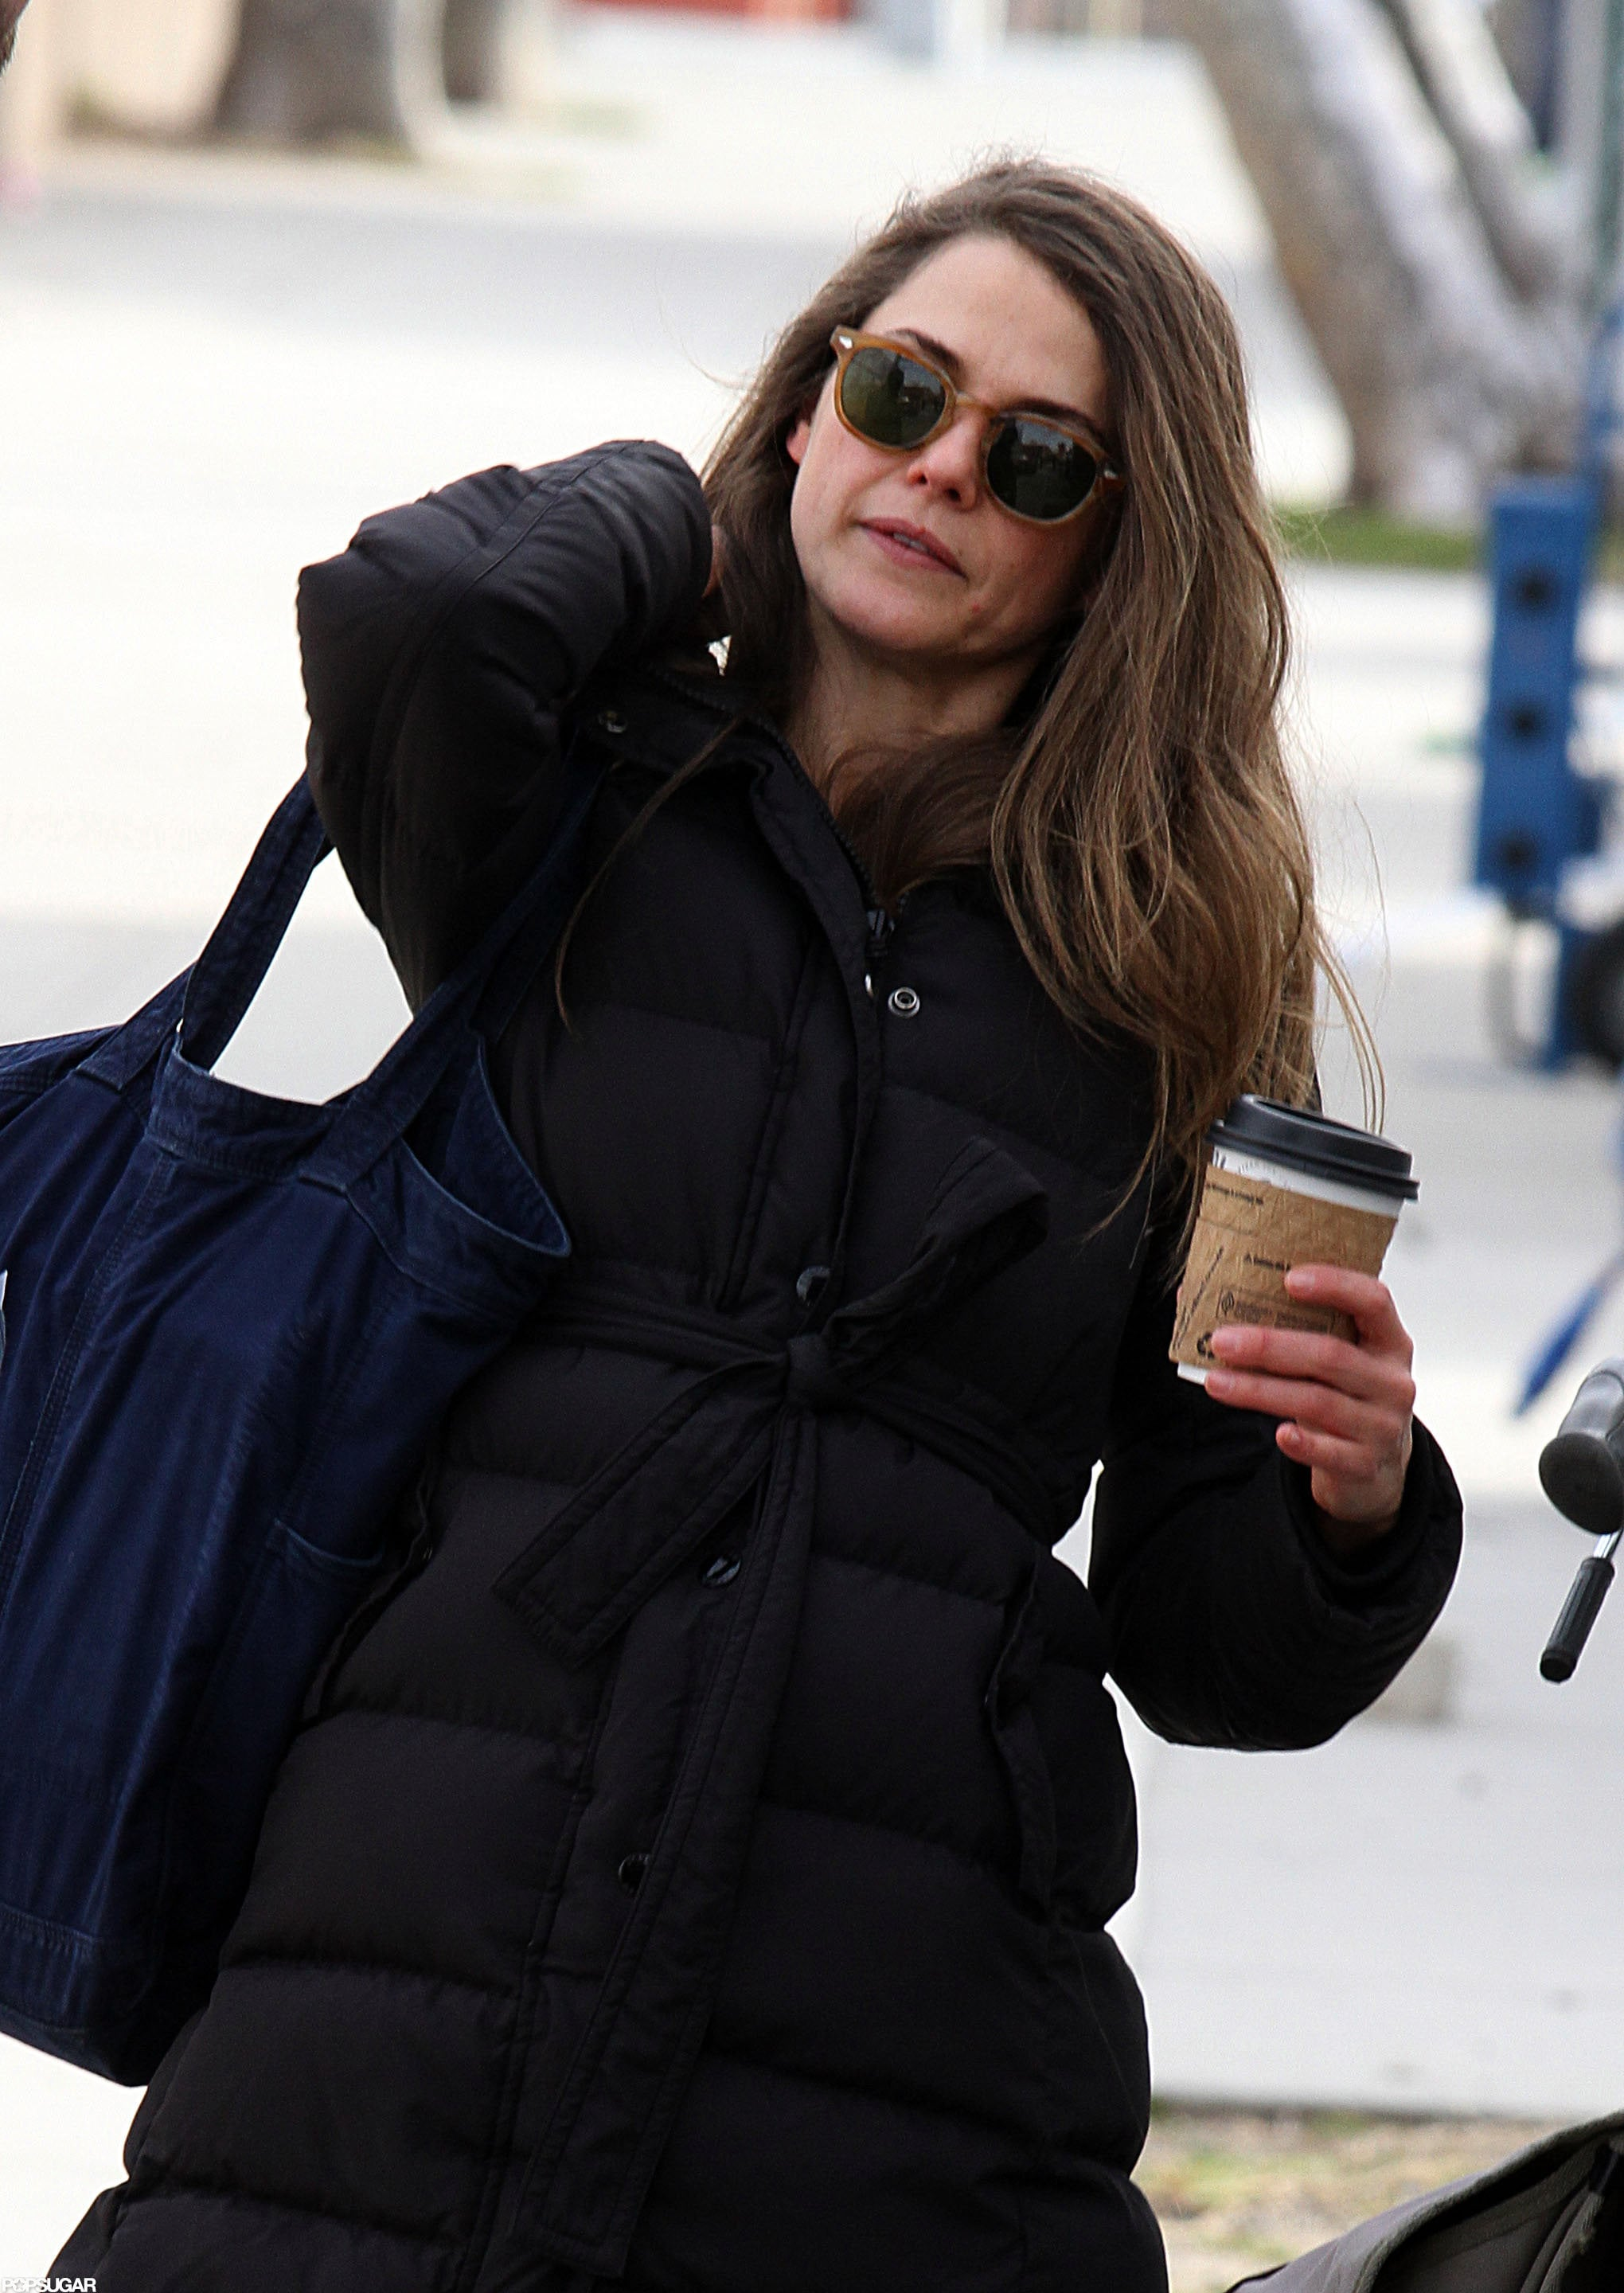 Keri Russell lifted a bag over her shoulder.